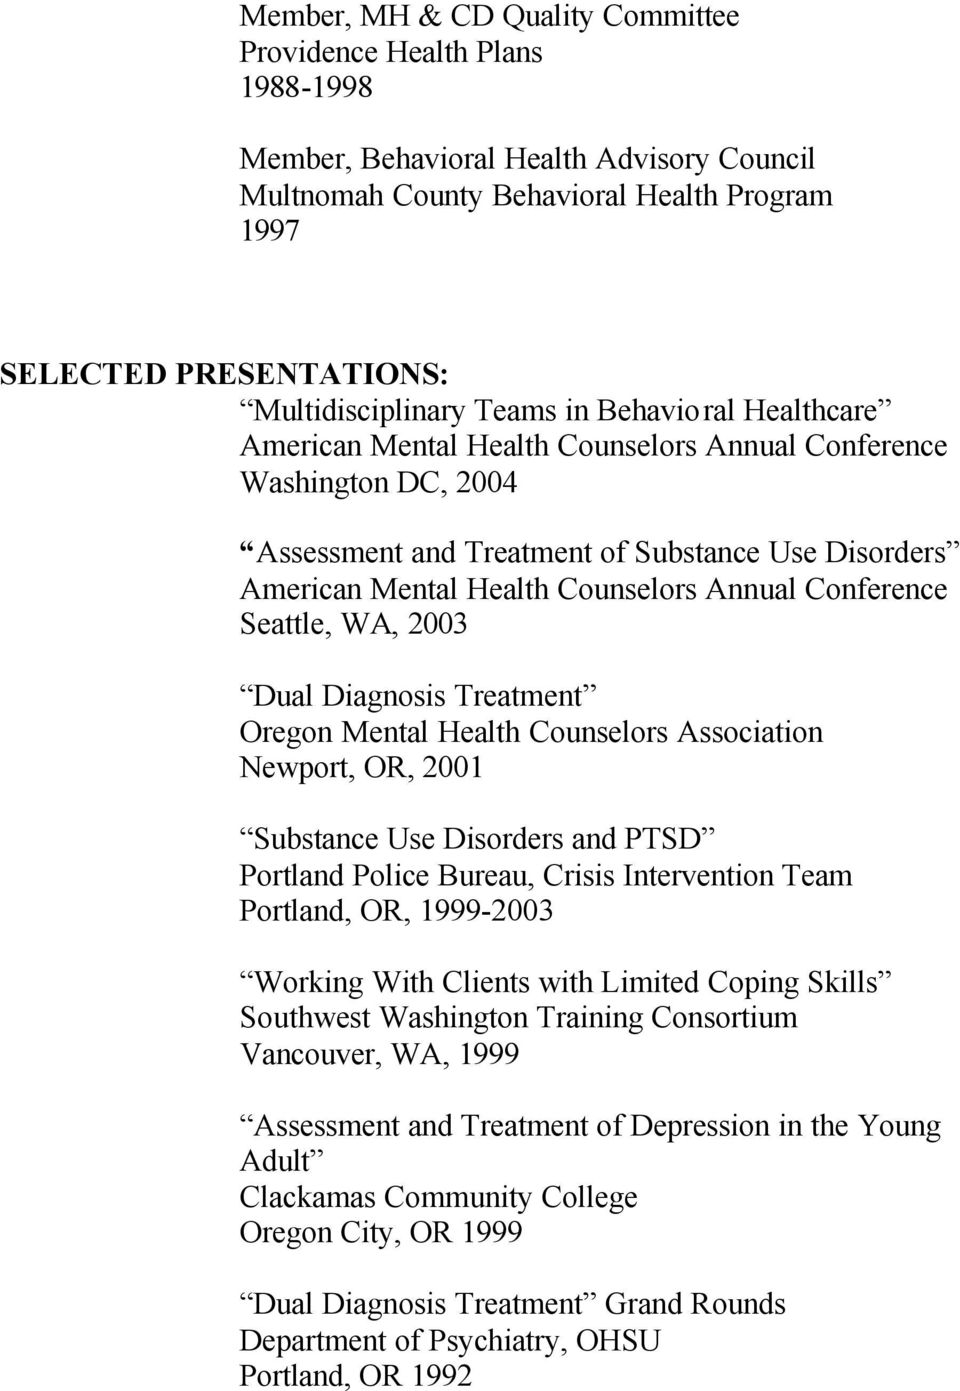 Counselors Annual Conference Seattle, WA, 2003 Dual Diagnosis Treatment Oregon Mental Health Counselors Association Newport, OR, 2001 Substance Use Disorders and PTSD Portland Police Bureau, Crisis